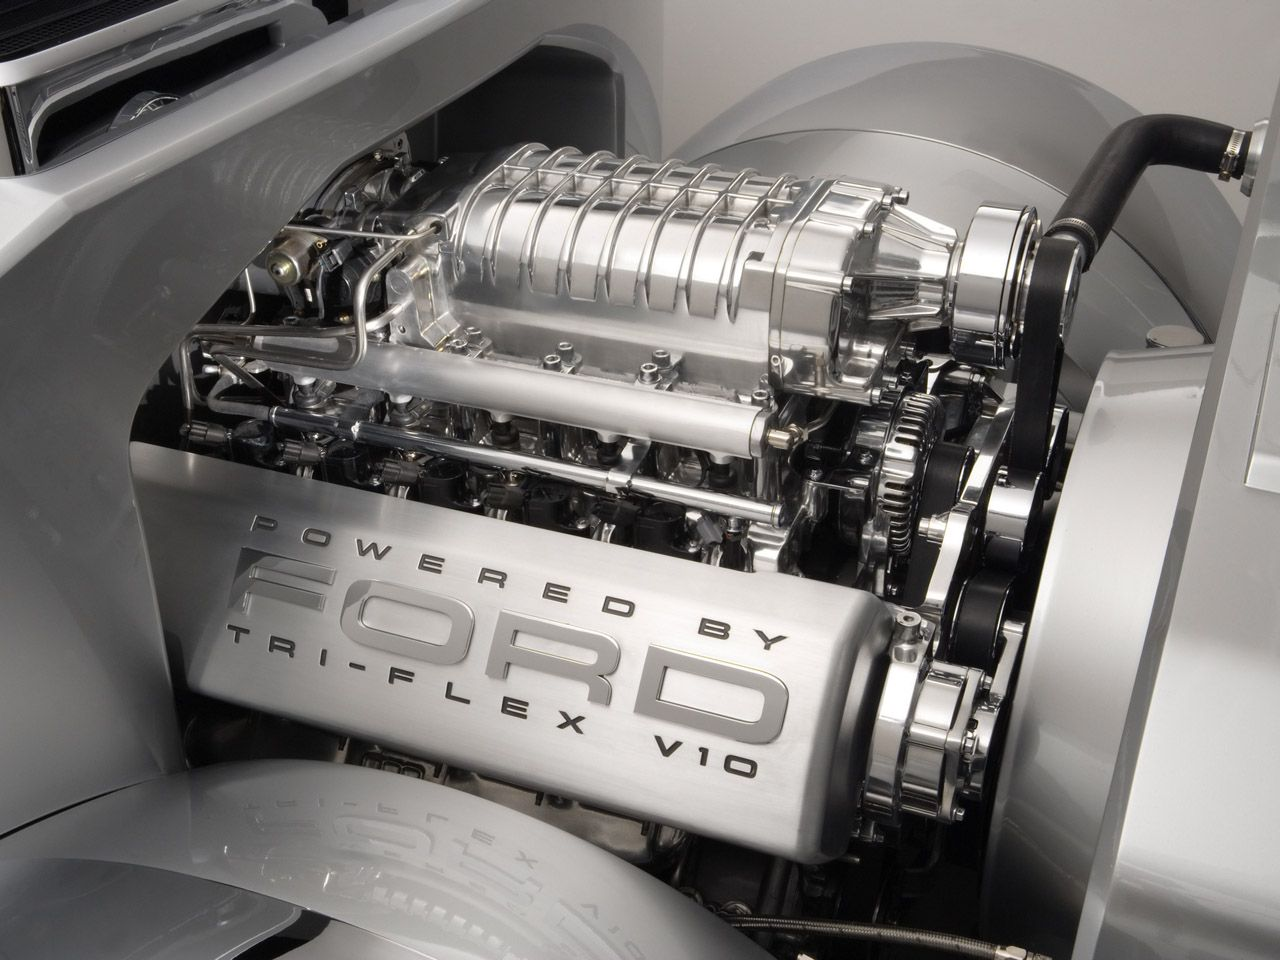 2006 Ford F 250 Super Chief Concept Engine 1280x960 Wallpaper Ford Pickup Trucks Ford F250 Ford